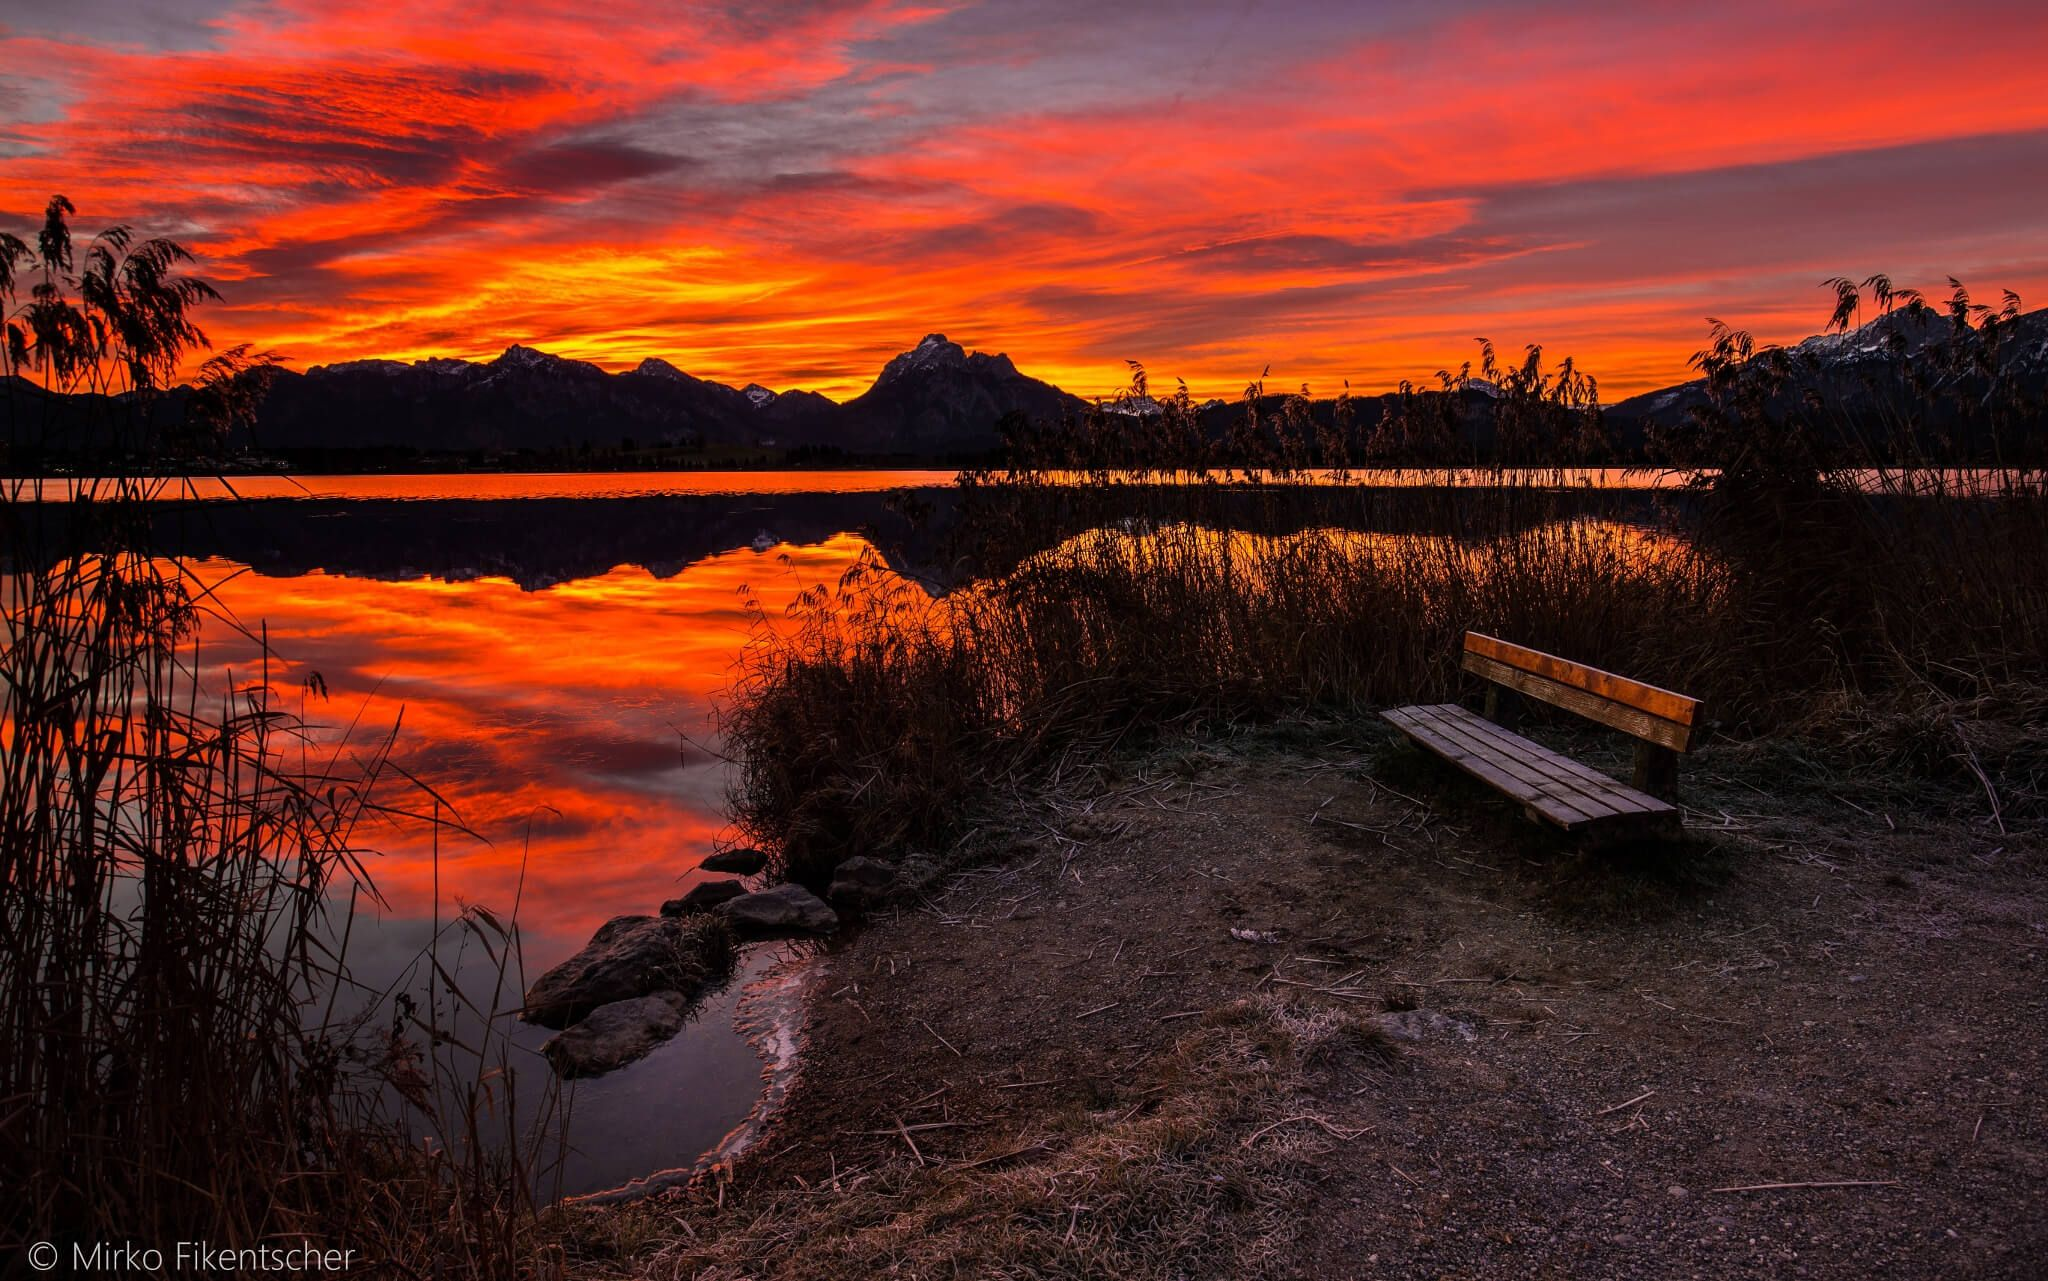 Beauty Colorful Landscapes Photography Colorful Landscape Landscape Photography Landscape Pictures